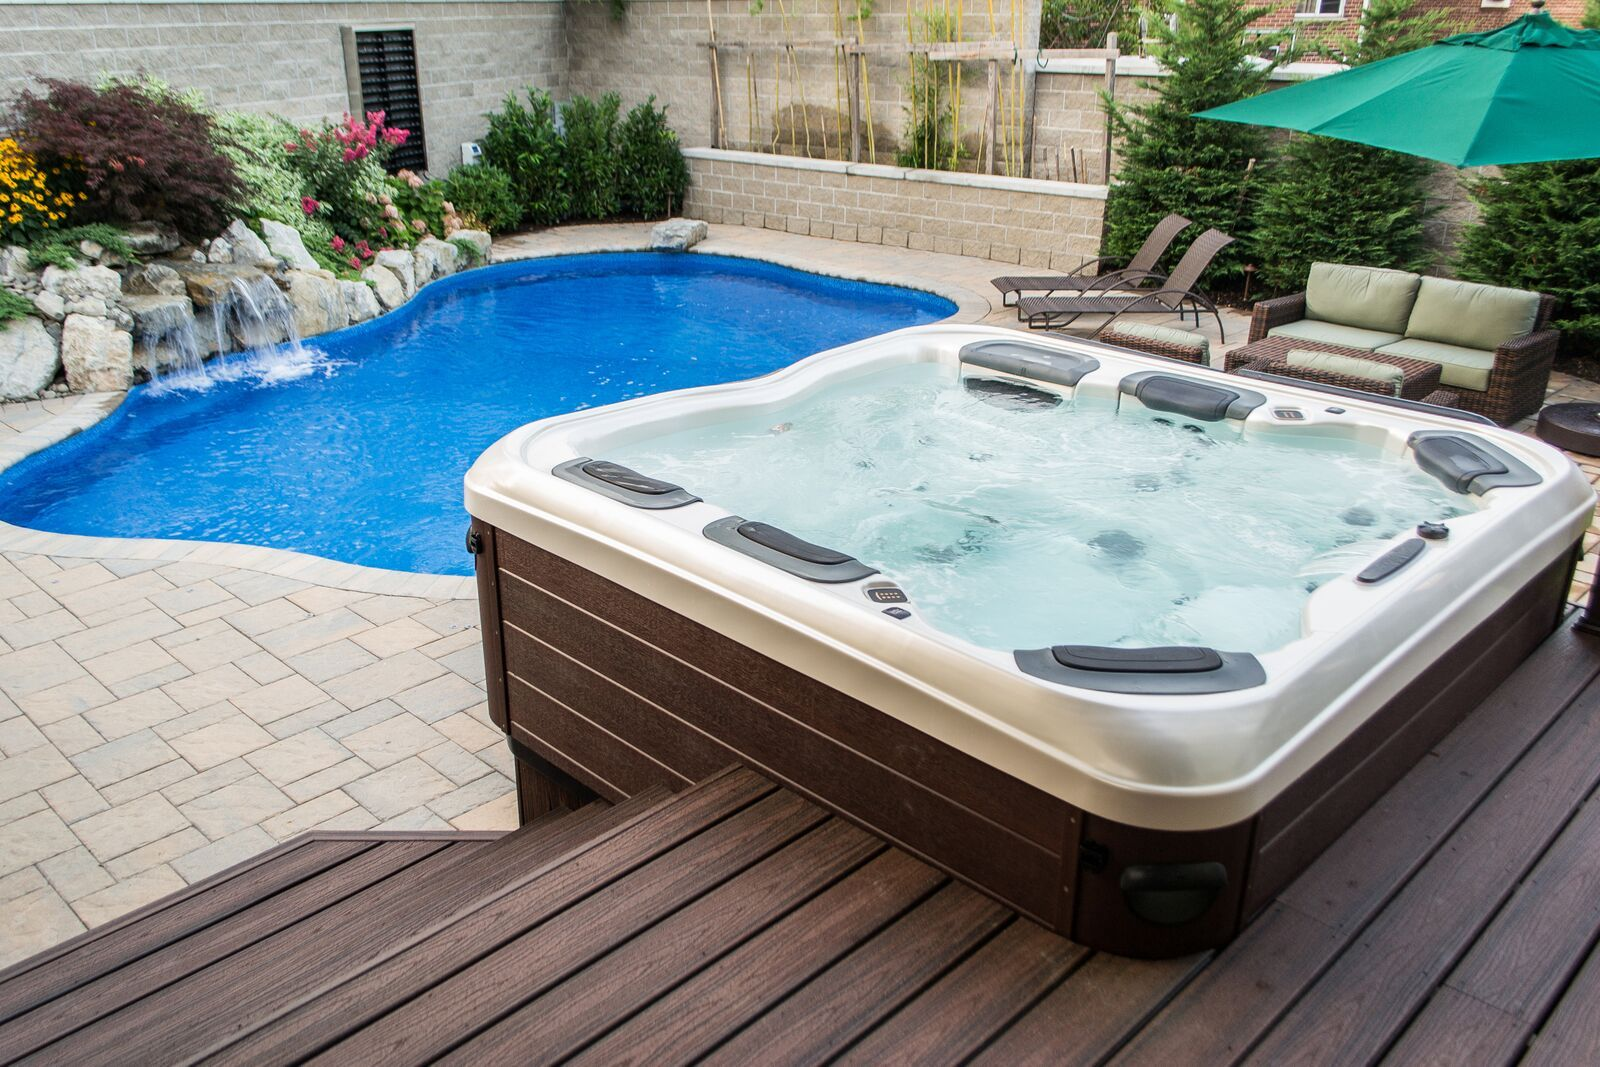 Portable Hot Tub Looks Like Custom Spillover Spa Ft Salonga Ny When You Work With Great Design Build Teams You Can Hot Tub Building A Deck Hot Tub Deck